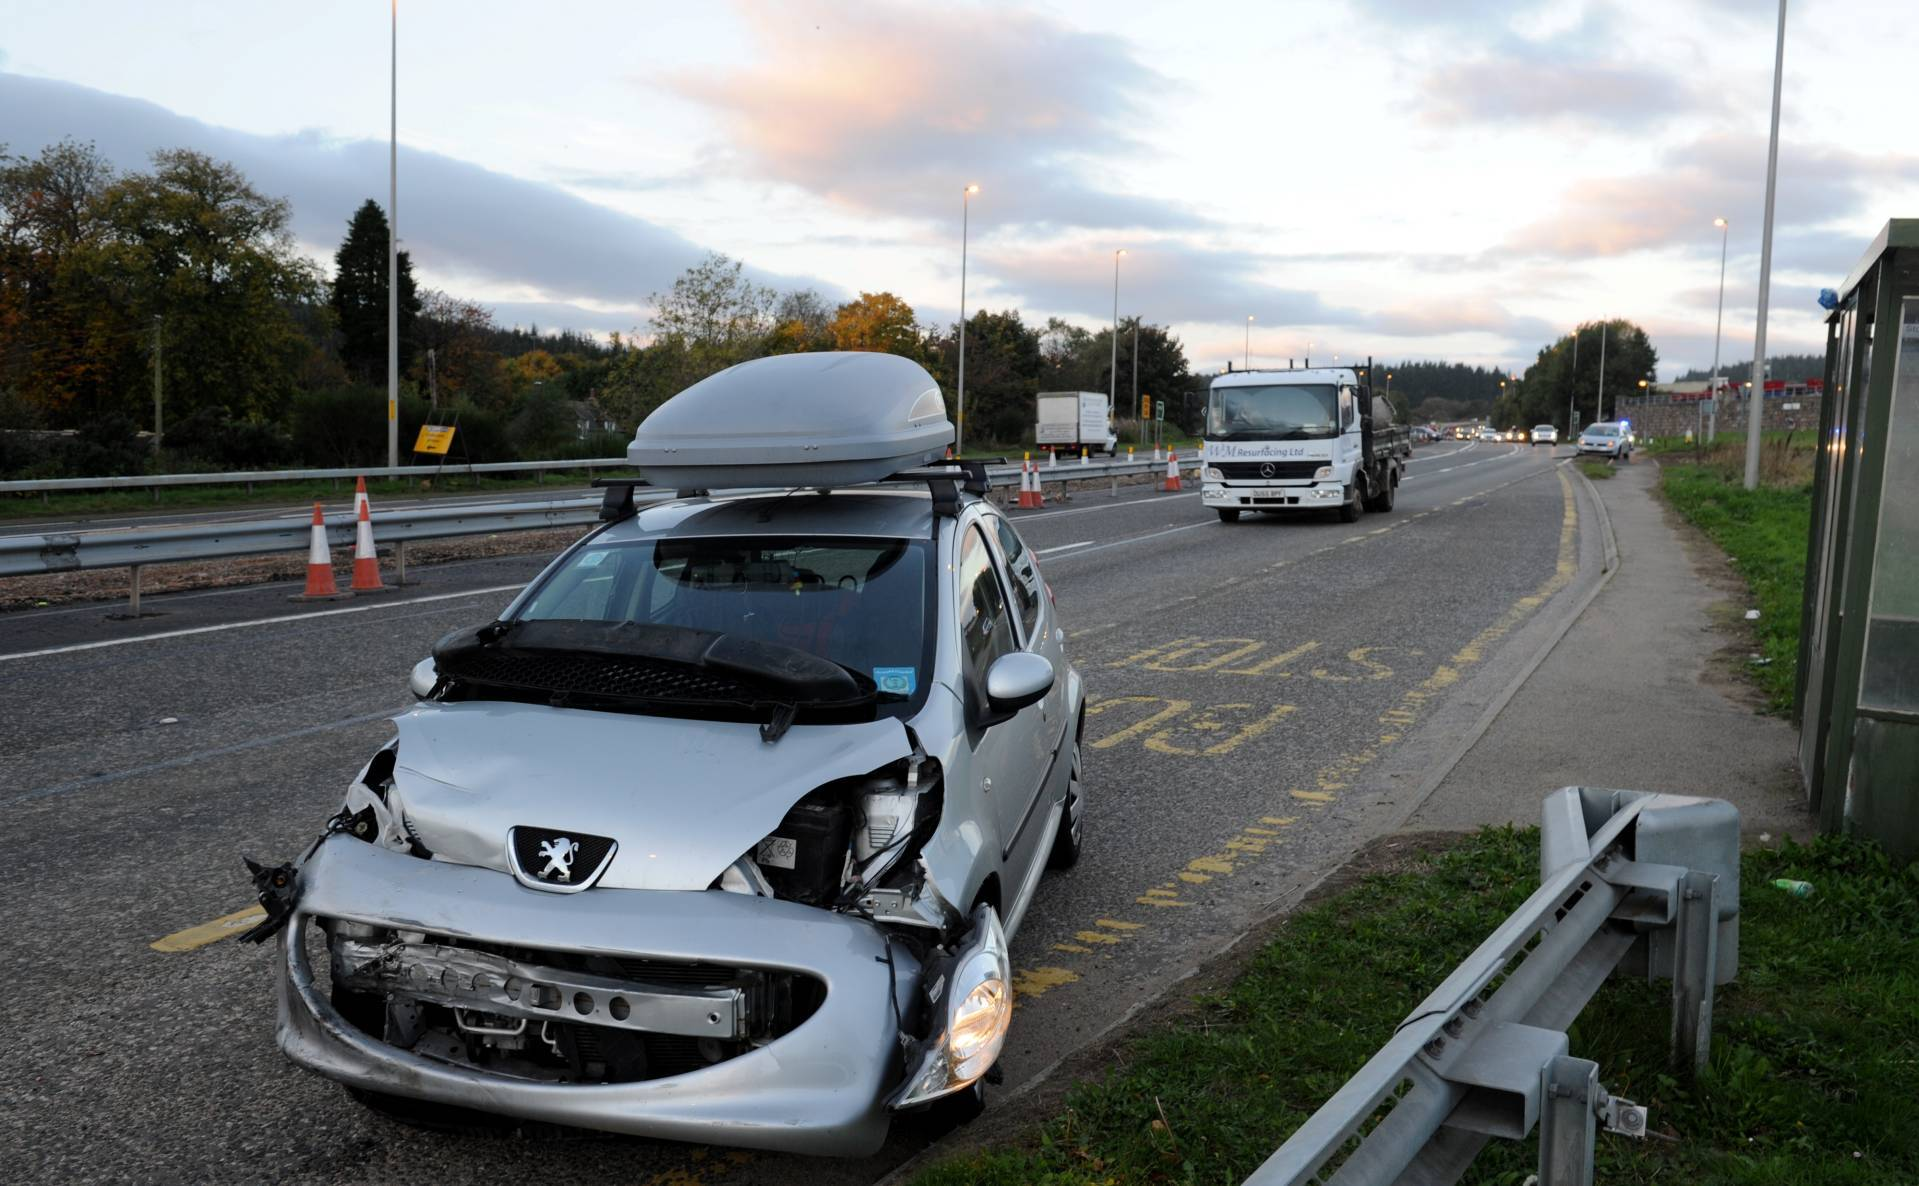 One of the vehicles involved in the crash on the A96.